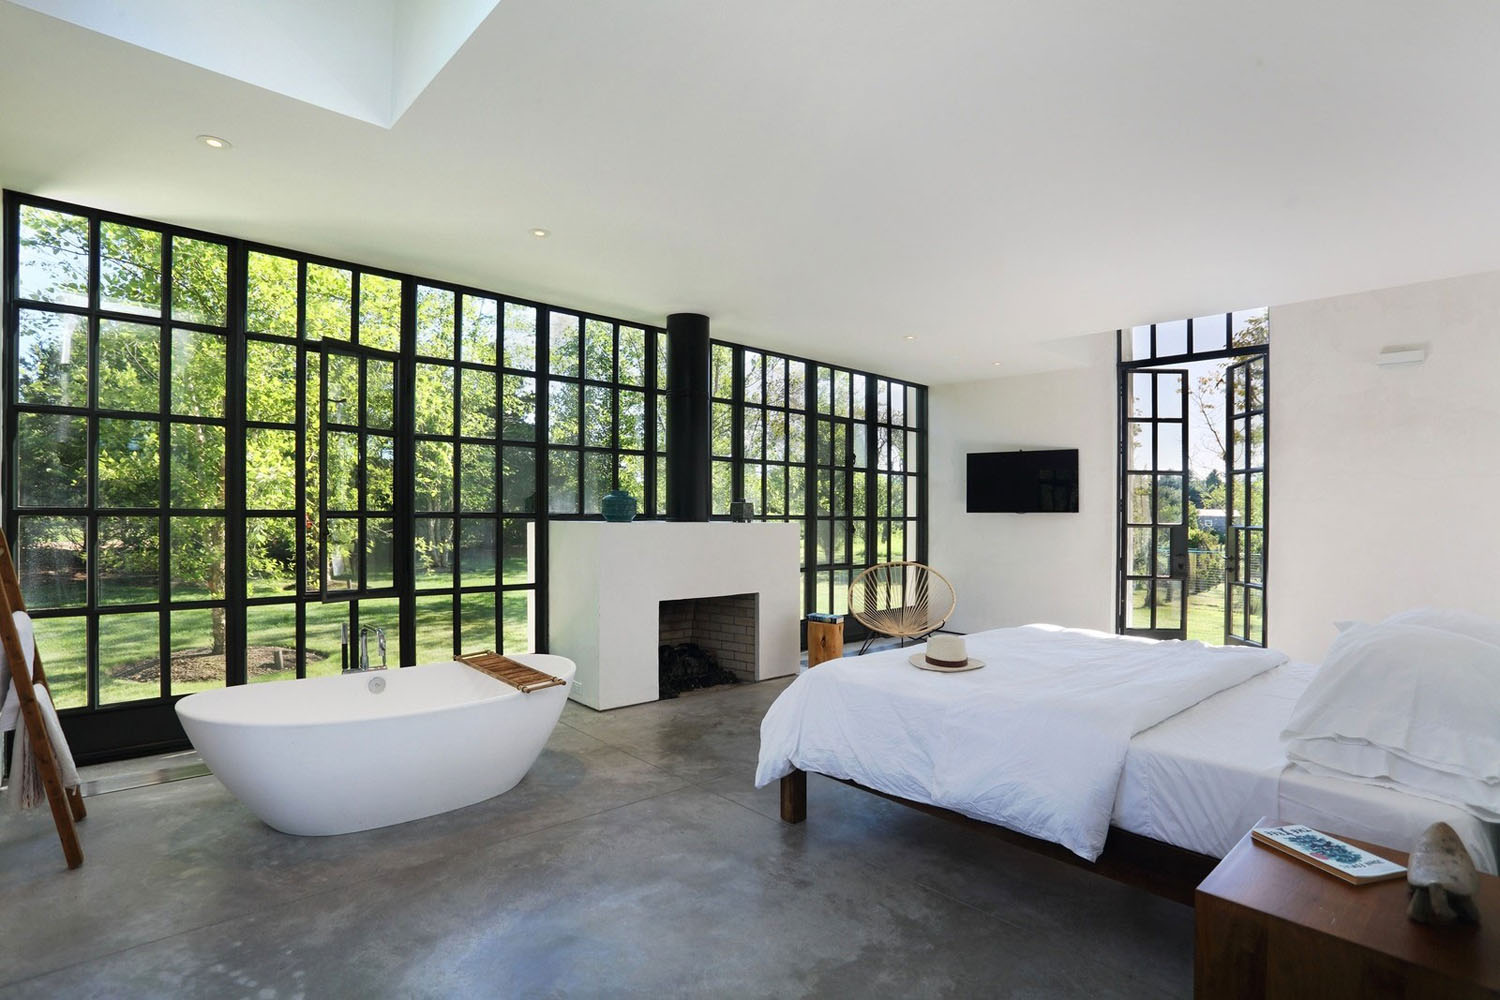 Modern Home Bedroom Design With Clean Lines